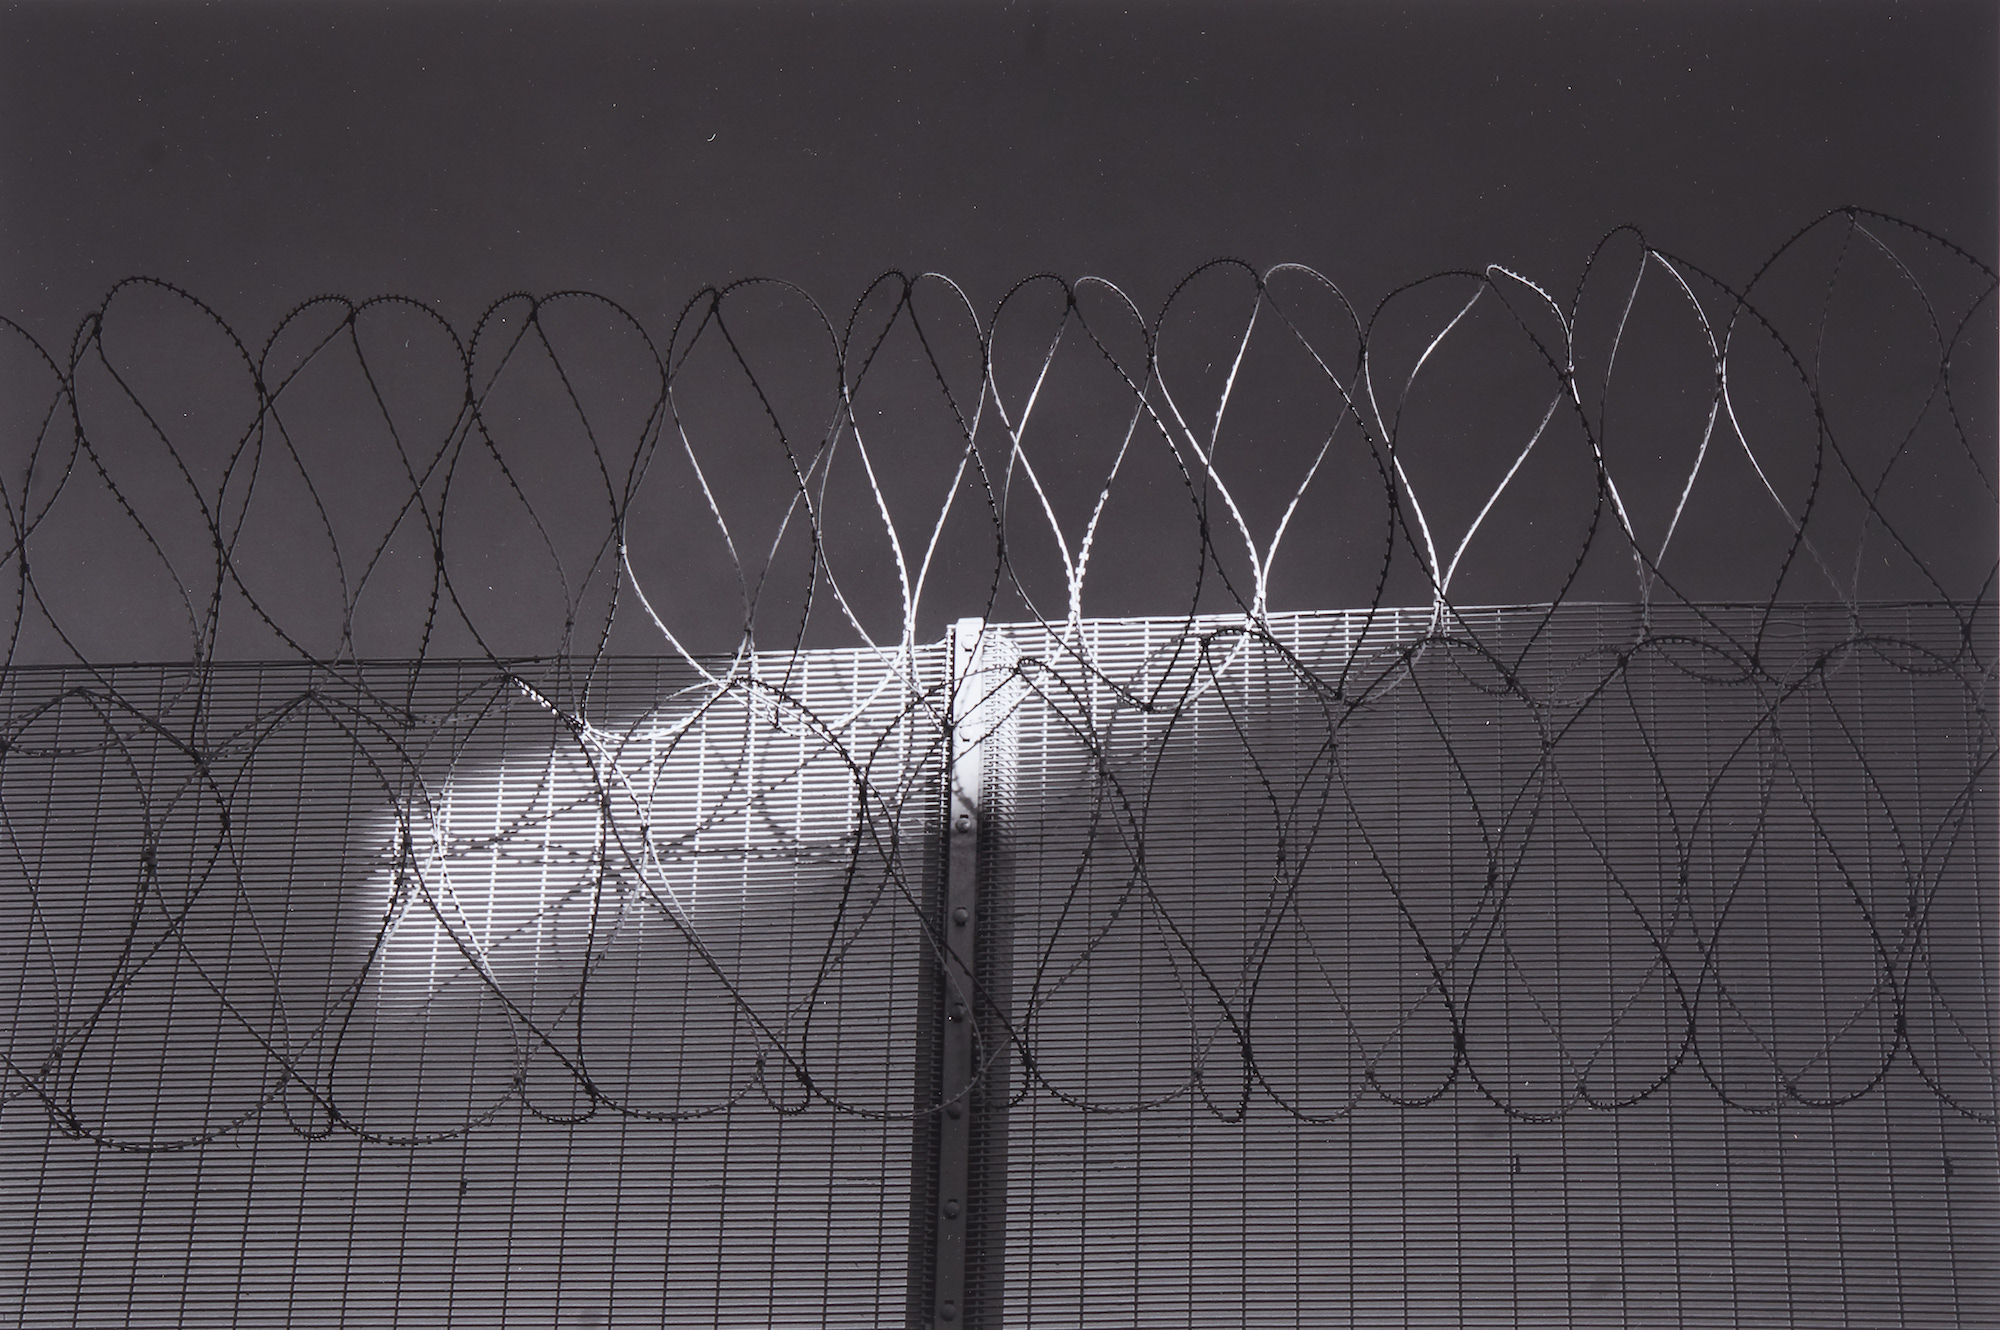 Photograph 8, Guernsey Prison, Keith Bromley Bronze Award for Photography